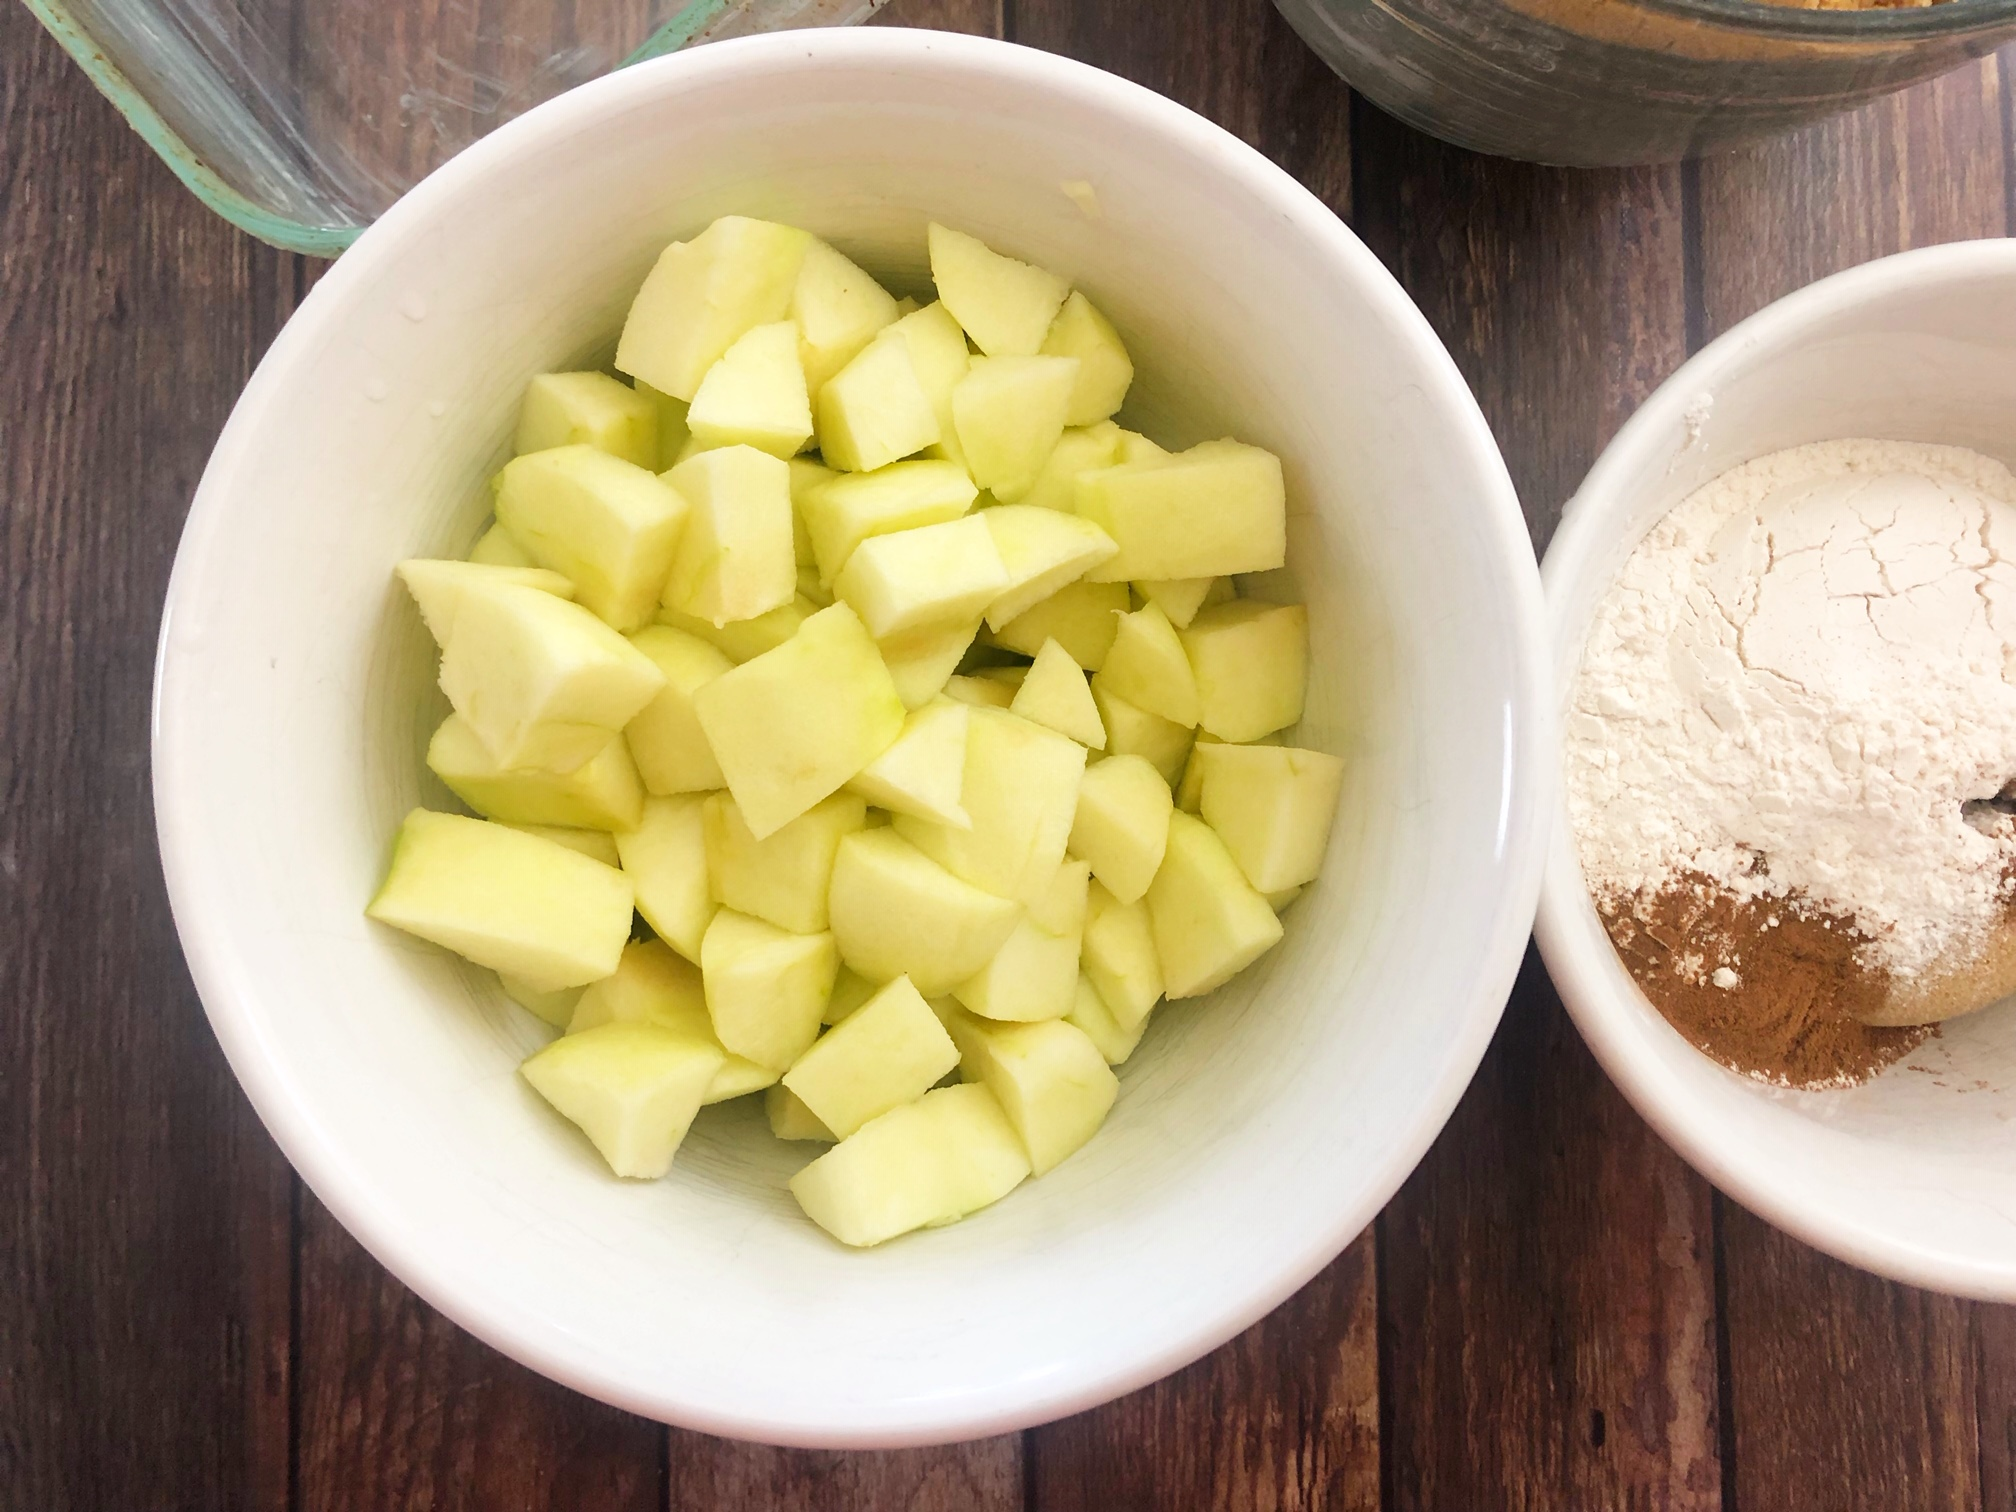 This super yummy old fashioned apple crisp recipe is a classic! All you need are some apples and some basic staples in your pantry!